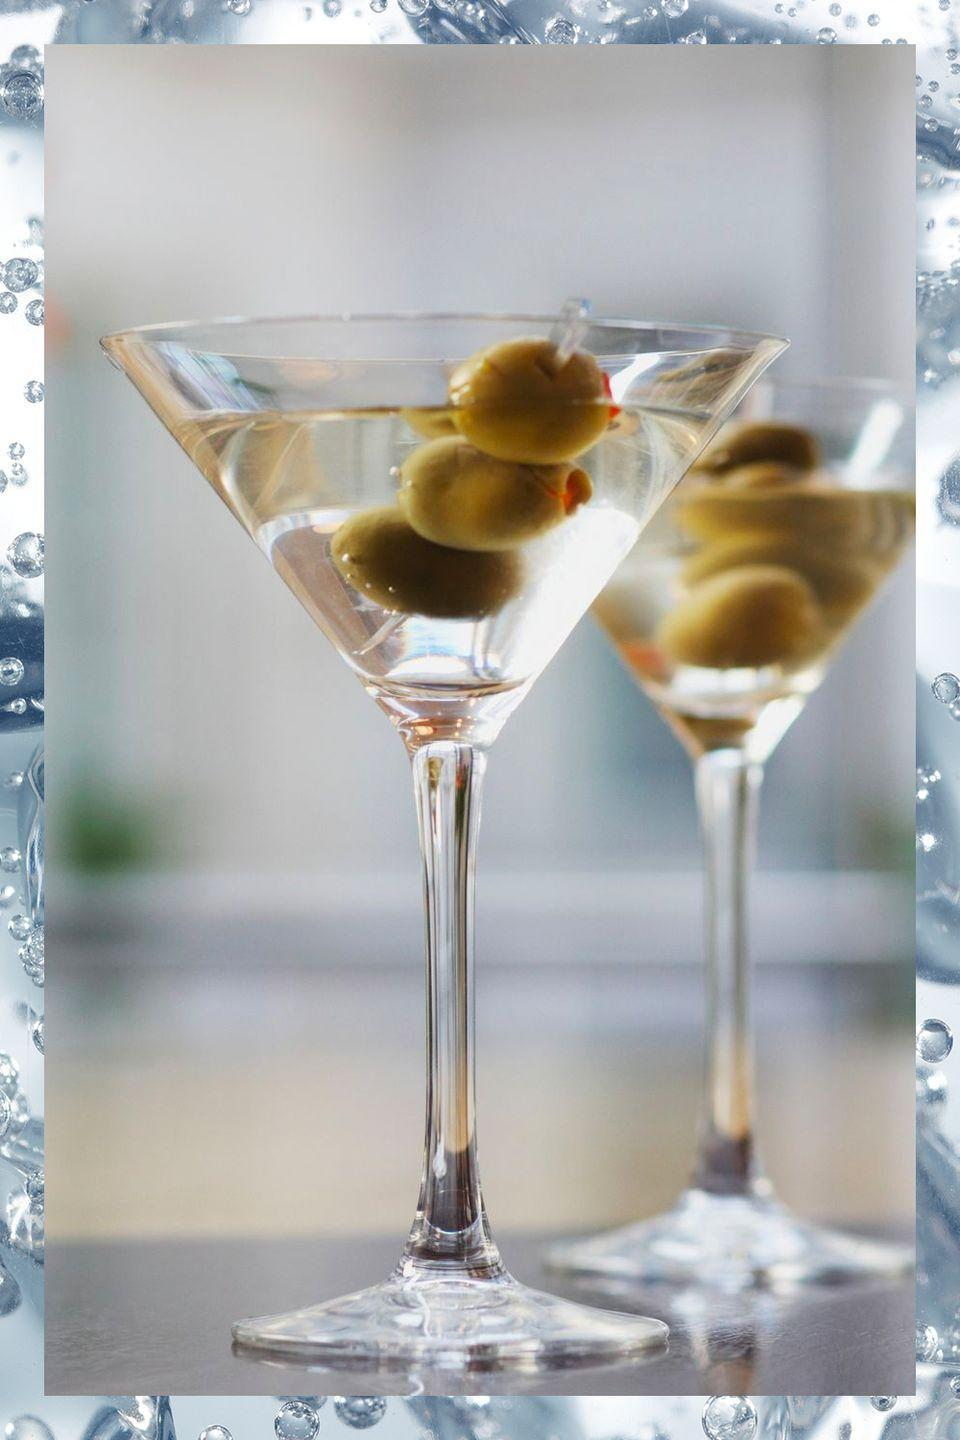 """<p>James Bond was wrong—whether you drink it with gin or vodka, stirred is the way to go when ordering a martini.</p><p>- 3 oz gin or vodka<br>- .5 oz dry vermouth<br>- Lemon peel or olive</p><p><em>Stir ingredients in a mixing glass with ice. Strain into chilled <a href=""""https://www.amazon.com/Riedel-VINUM-Martini-Glasses-Set/dp/B000W06570/?tag=syn-yahoo-20&ascsubtag=%5Bartid%7C10067.g.13092298%5Bsrc%7Cyahoo-us"""" rel=""""nofollow noopener"""" target=""""_blank"""" data-ylk=""""slk:martini glass"""" class=""""link rapid-noclick-resp"""">martini glass</a>. Squeeze oil from lemon peel into the glass or garnish with olive.</em></p><p><strong>More:</strong> <a href=""""https://www.townandcountrymag.com/leisure/drinks/g9158516/fun-martini-recipes-vodka-gin/"""" rel=""""nofollow noopener"""" target=""""_blank"""" data-ylk=""""slk:The Most Delicious Martinis Made With Gin & Vodka"""" class=""""link rapid-noclick-resp"""">The Most Delicious Martinis Made With Gin & Vodka</a></p>"""